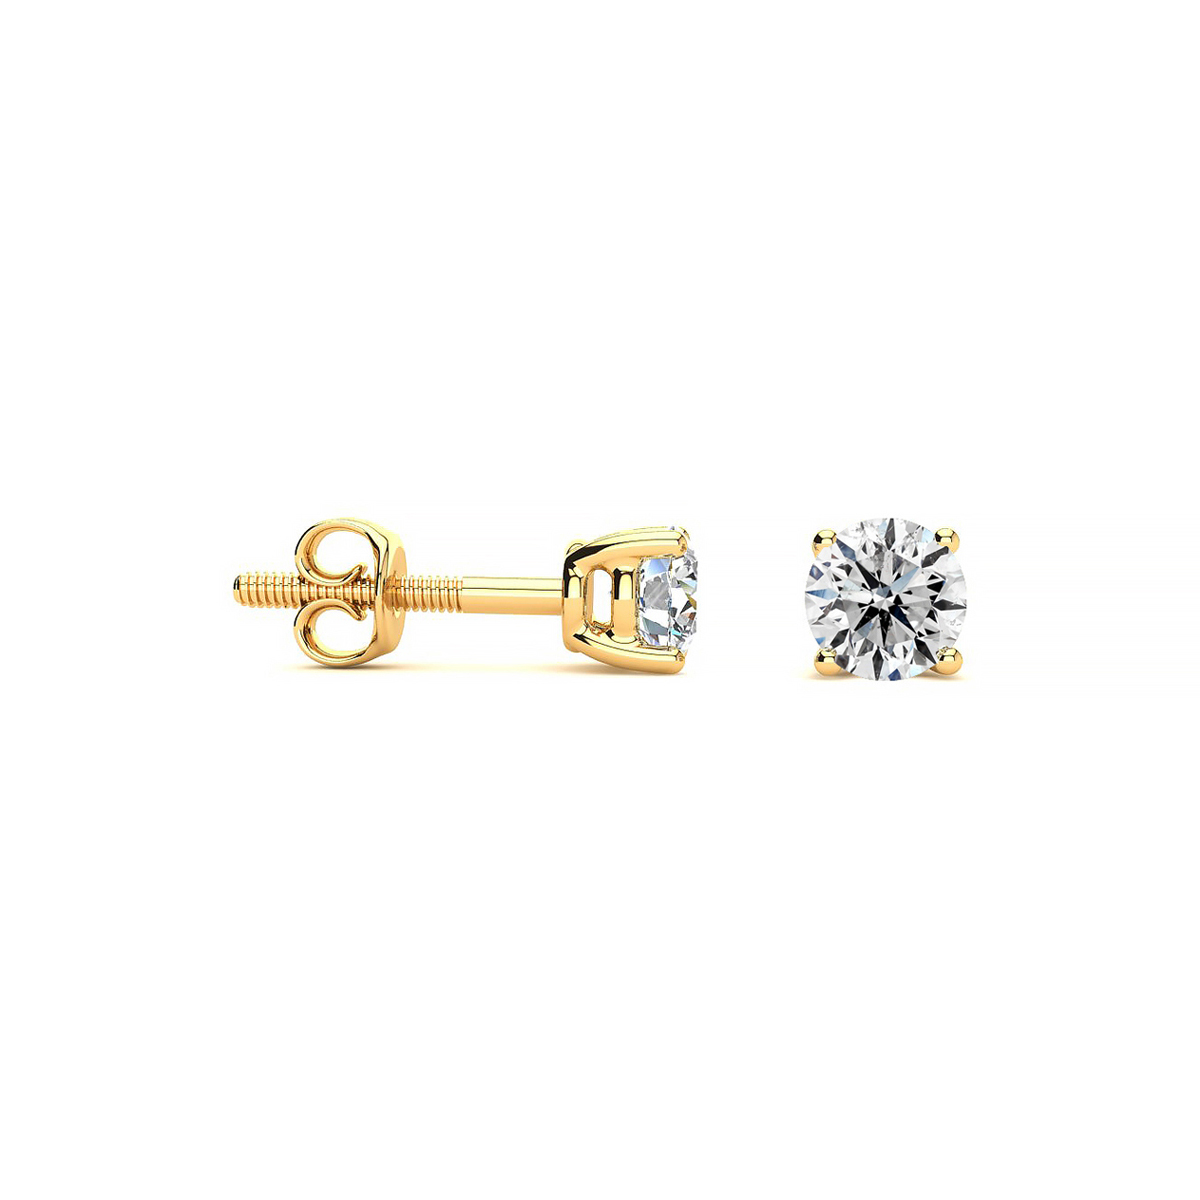 Colorless 1 4 Carat Diamond Stud Earrings In 14k Yellow Gold